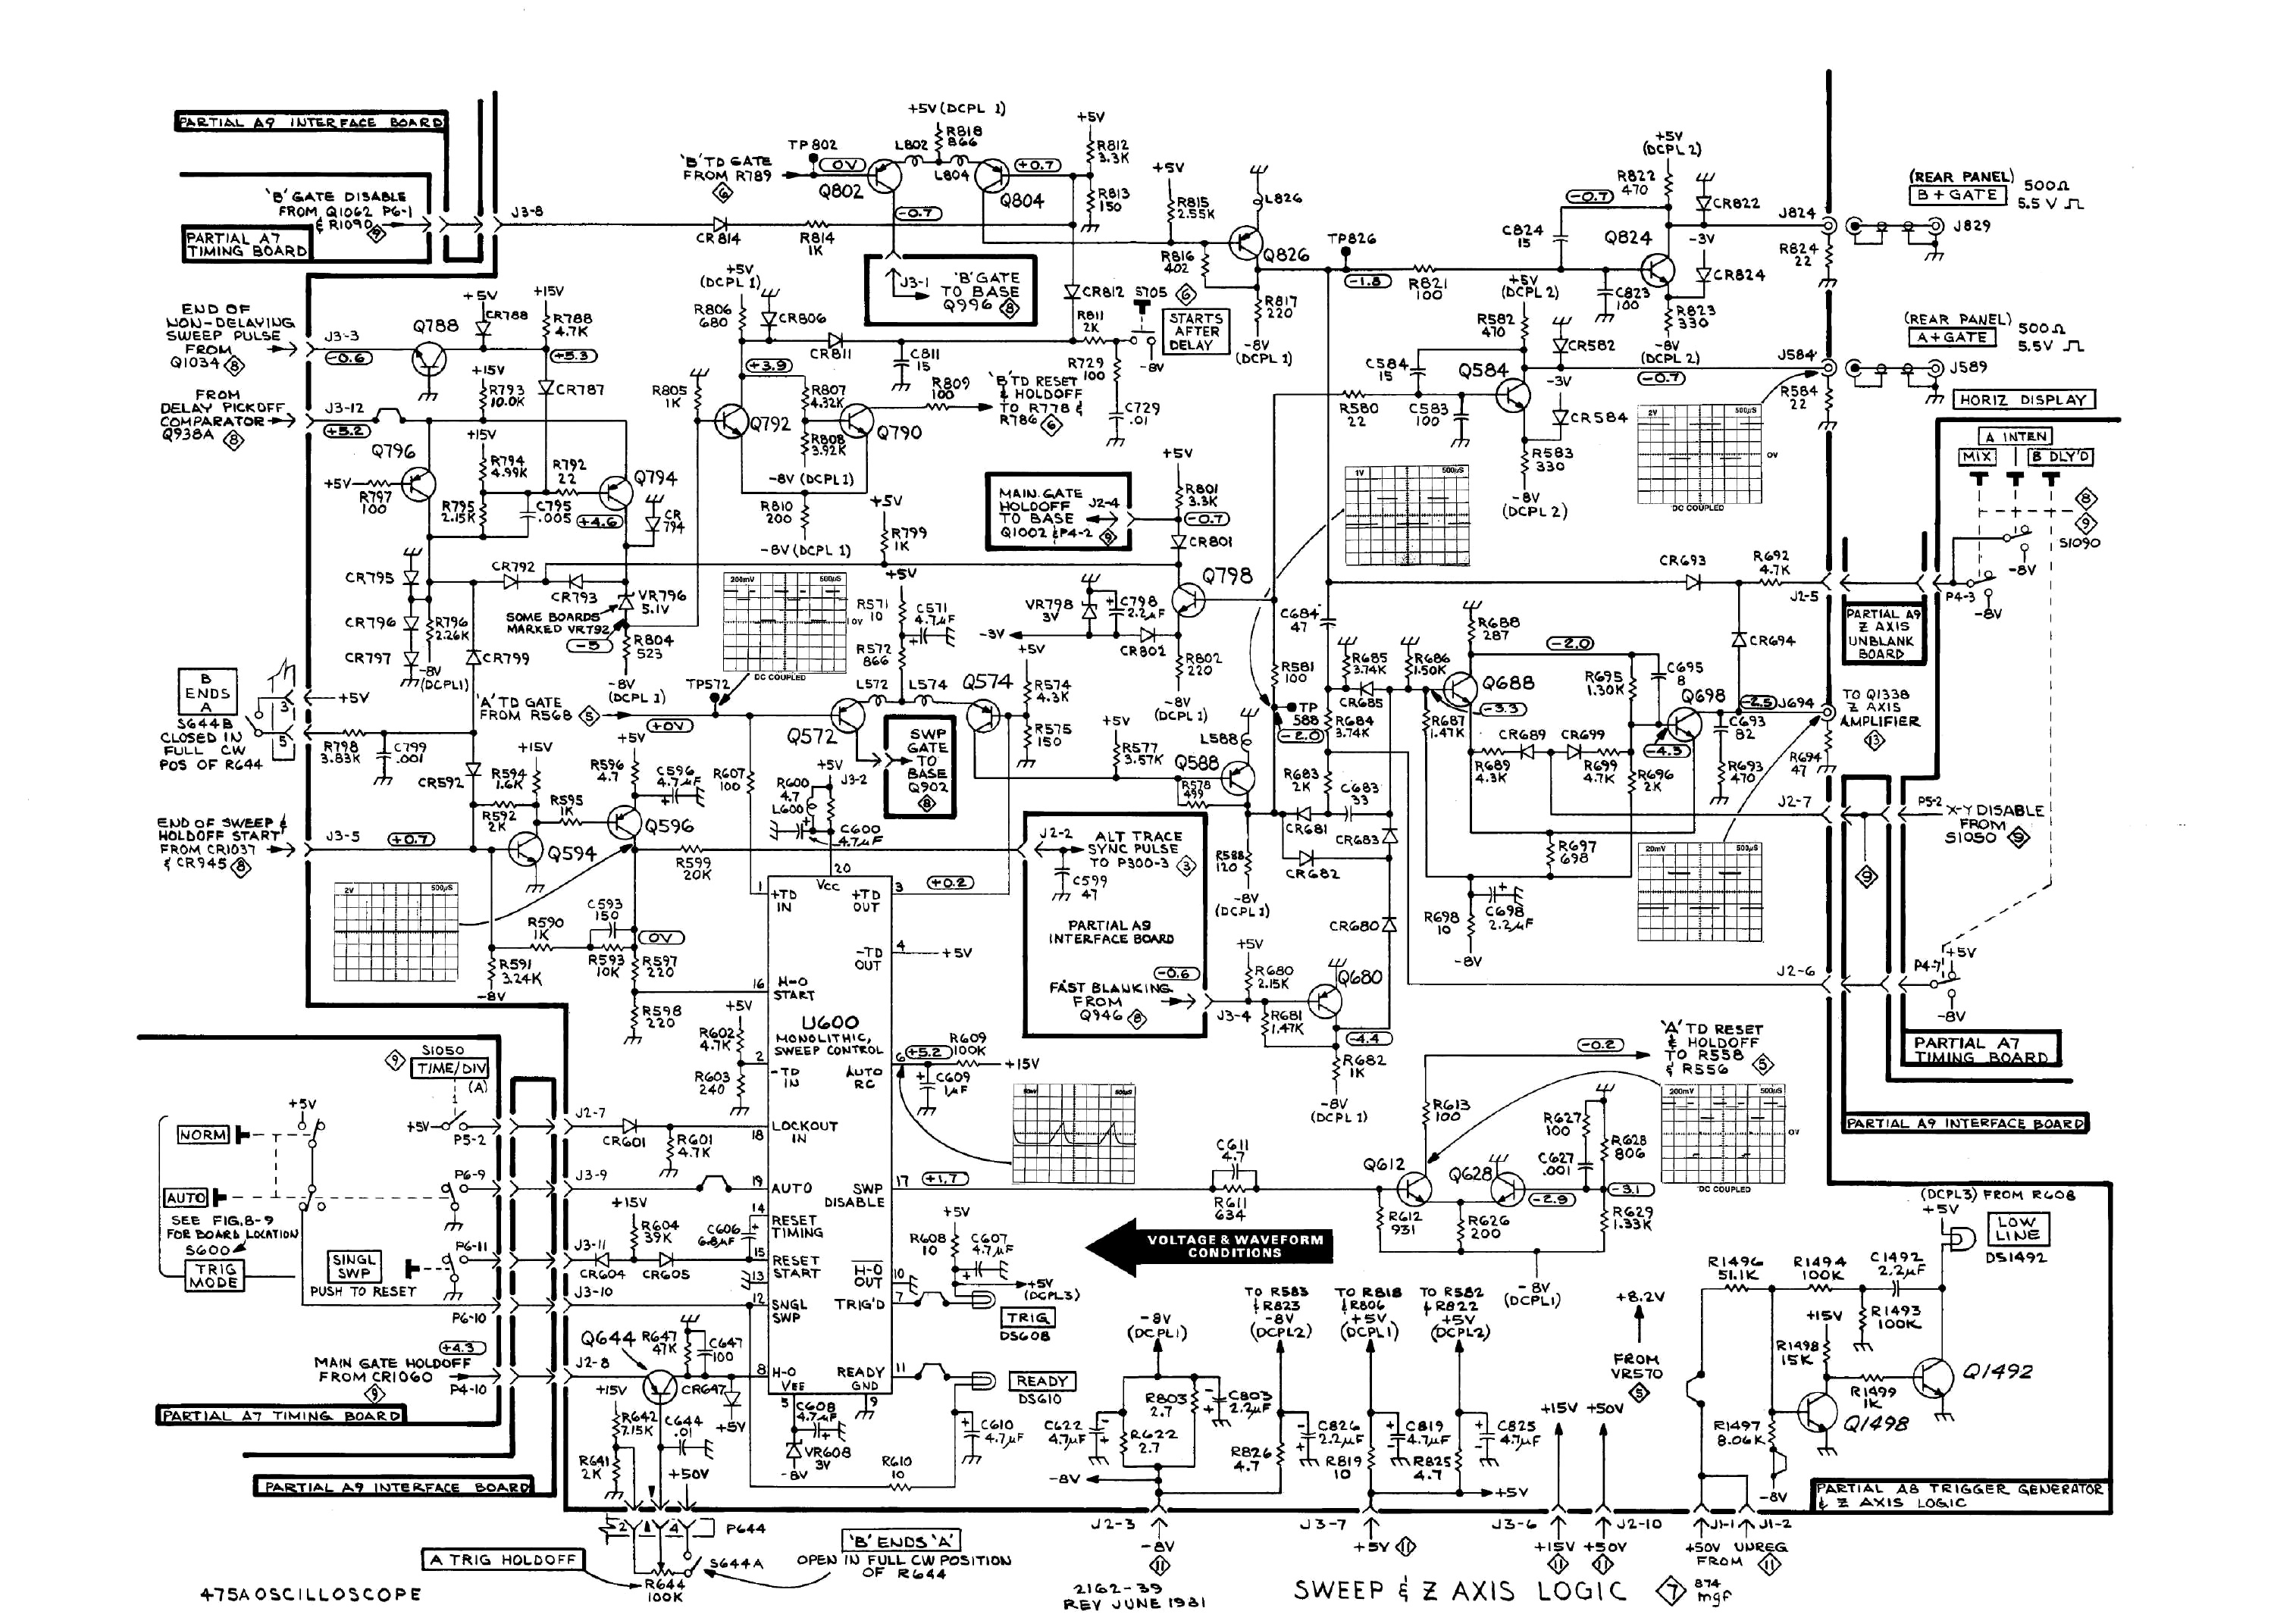 Groovy Lcd Tv Circuit Block Diagram Basic Electronics Wiring Diagram Wiring 101 Capemaxxcnl